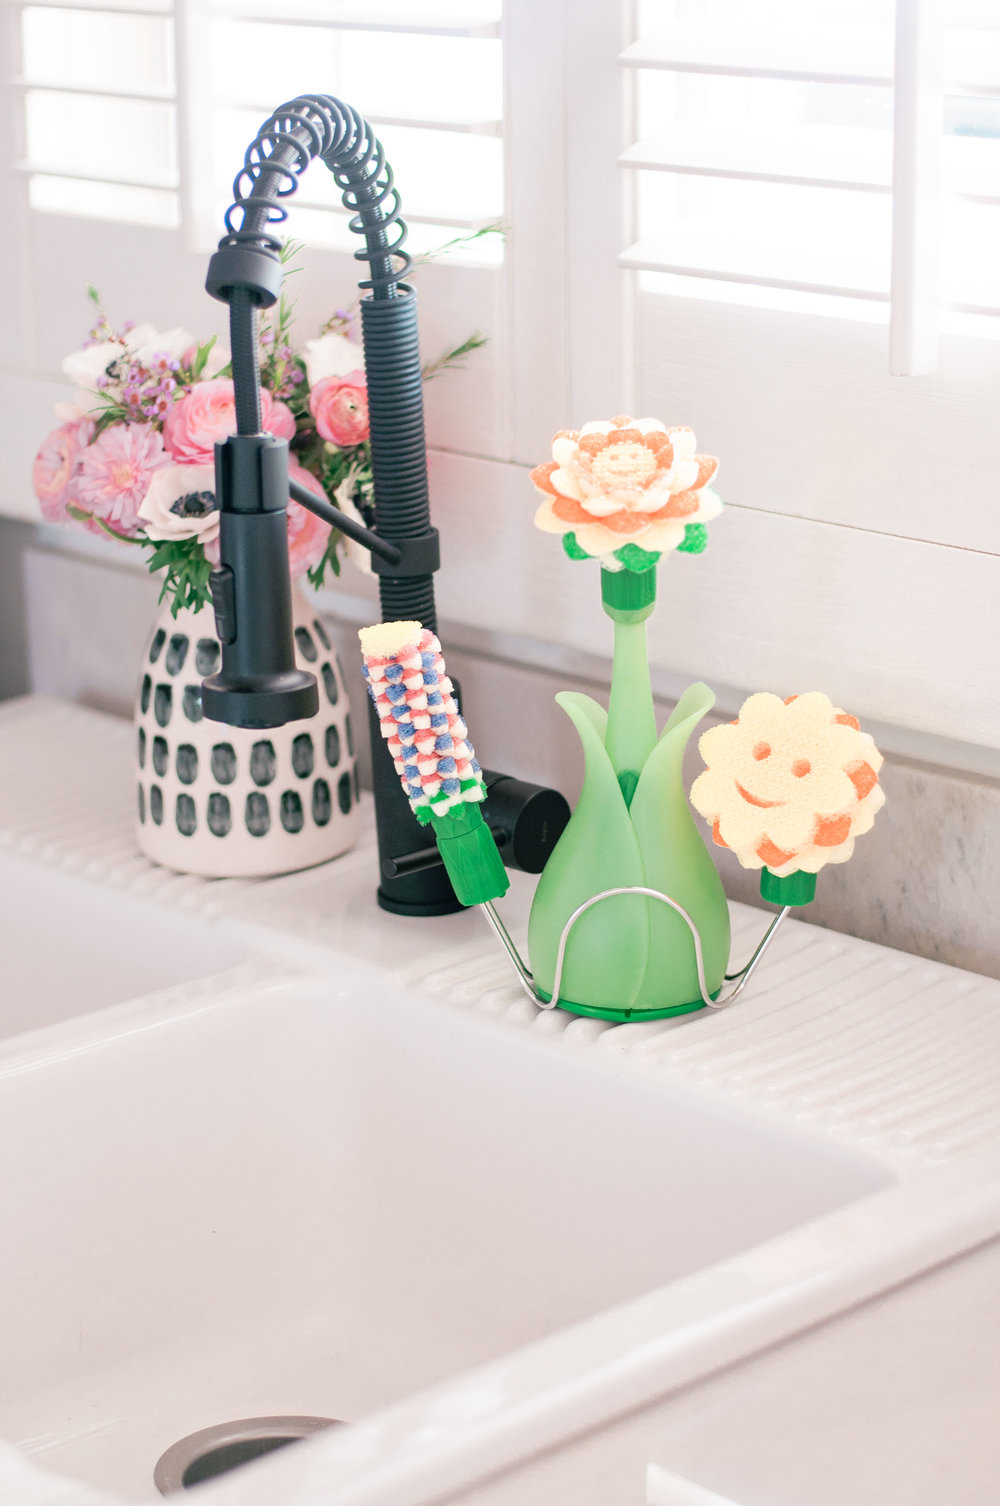 The best dish scrubber